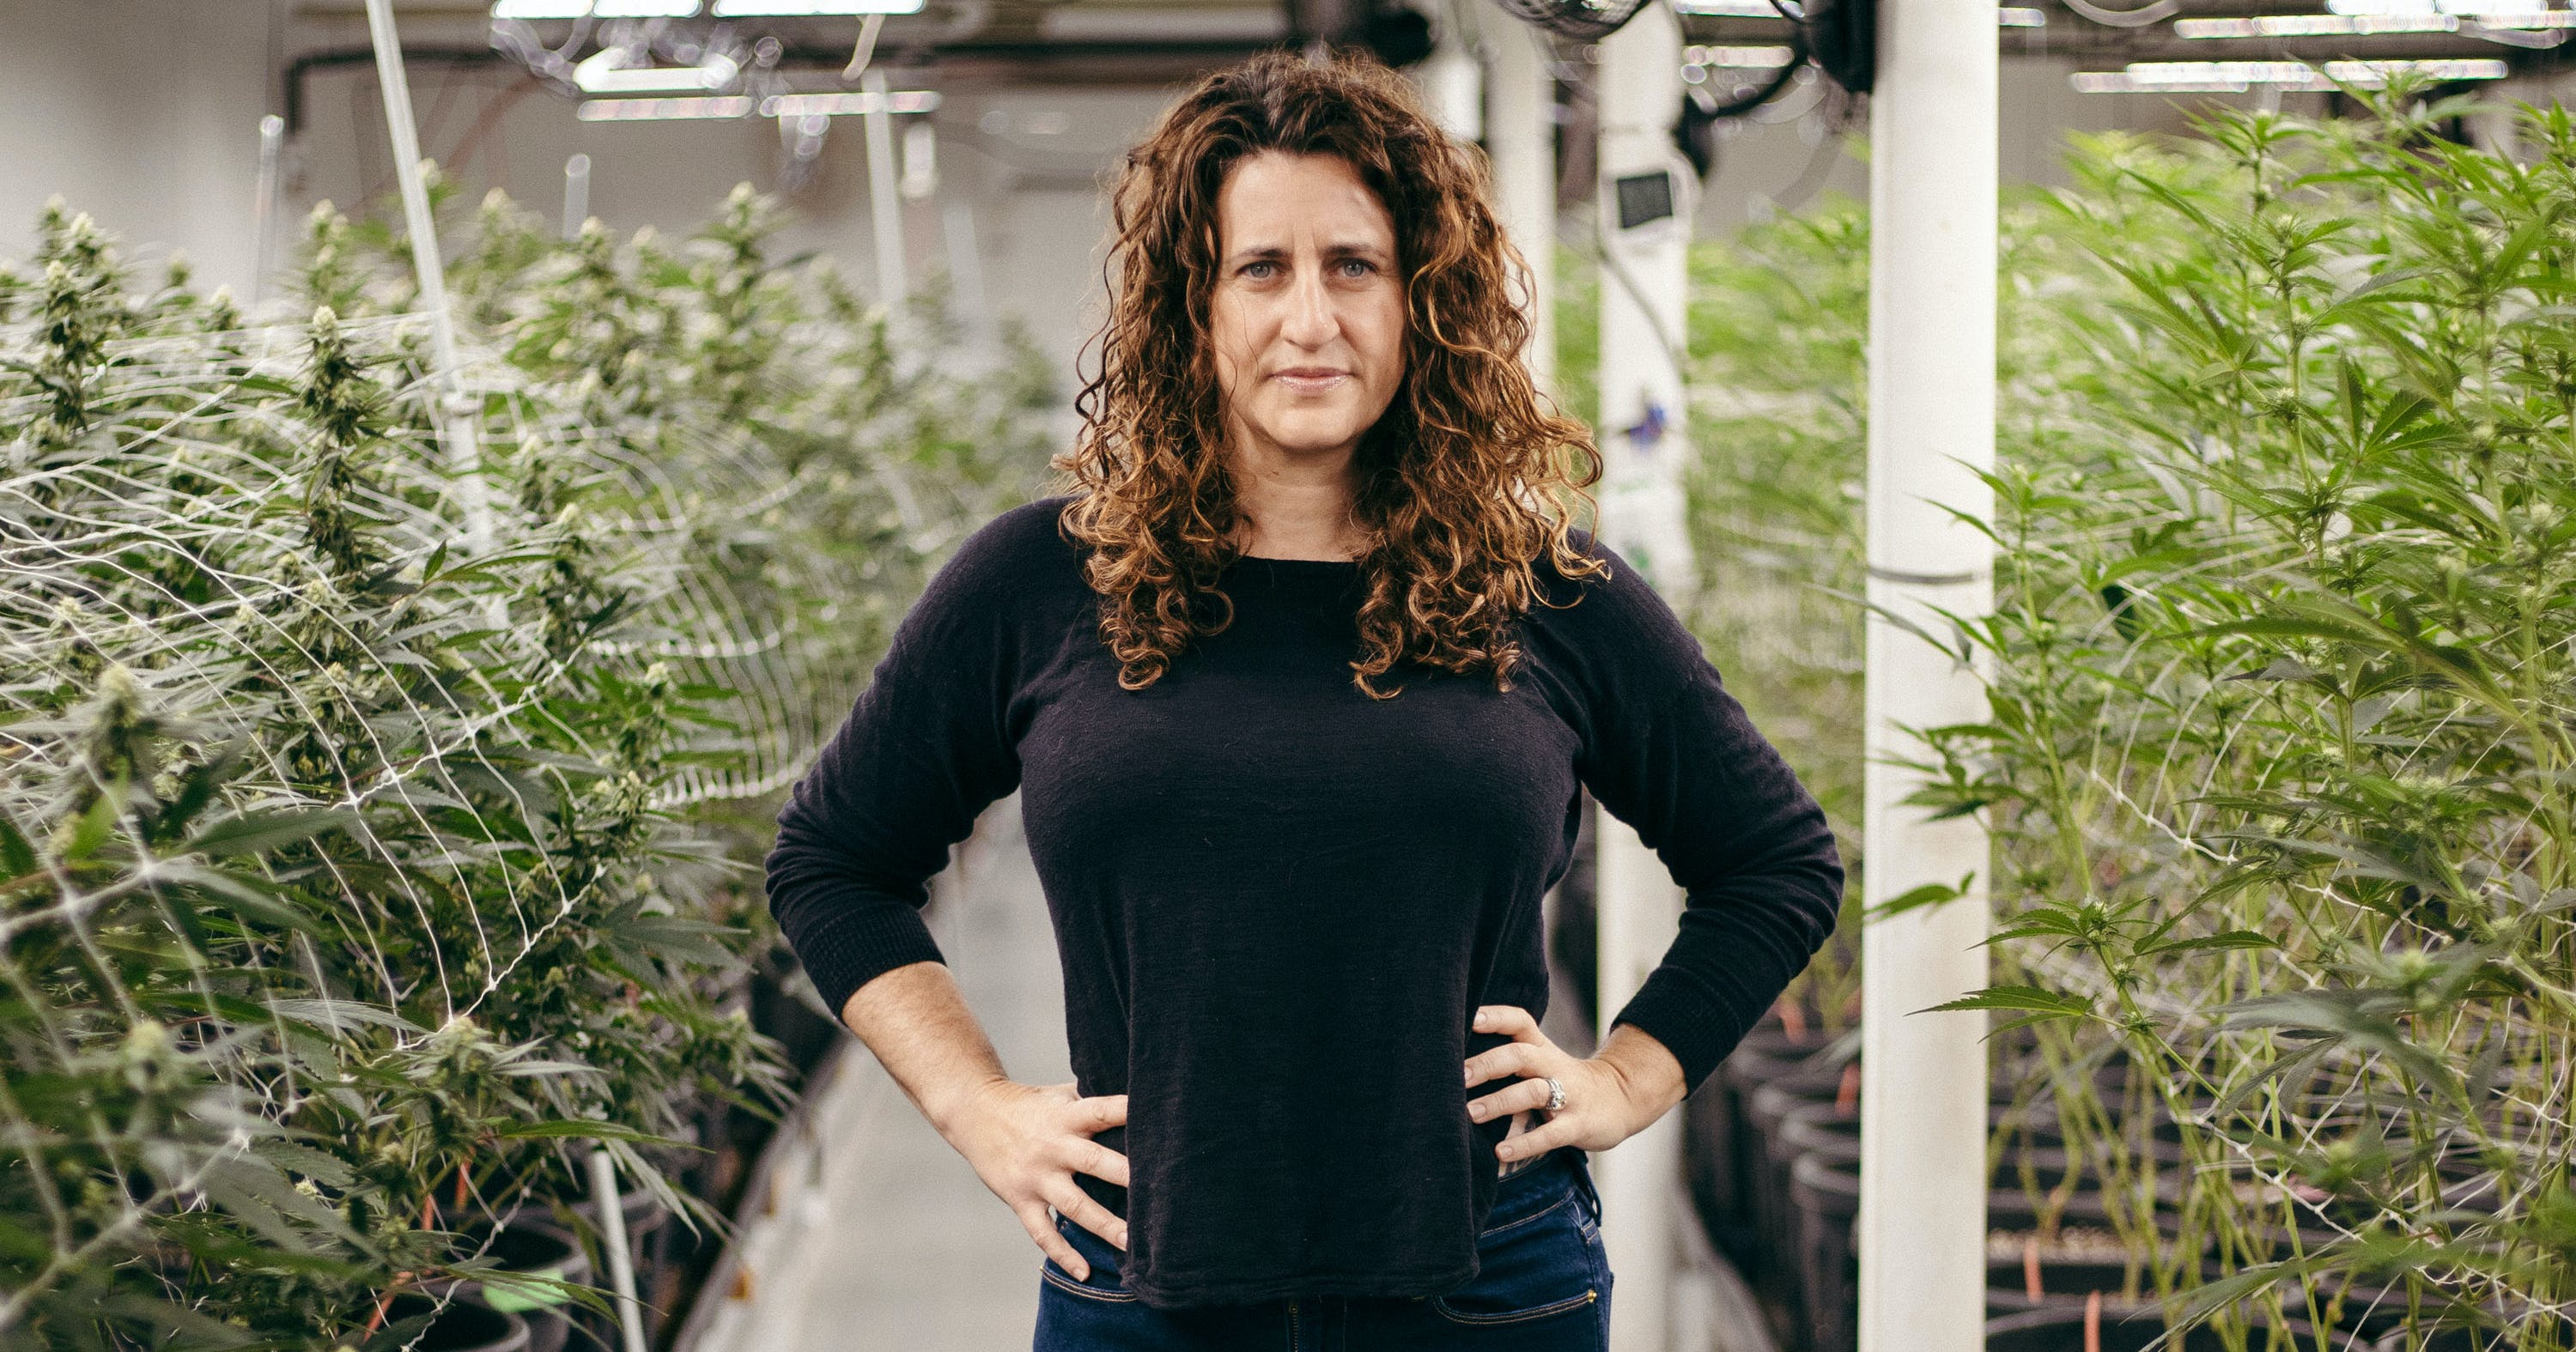 Amy Margolis stands in an indoor cannabis grow